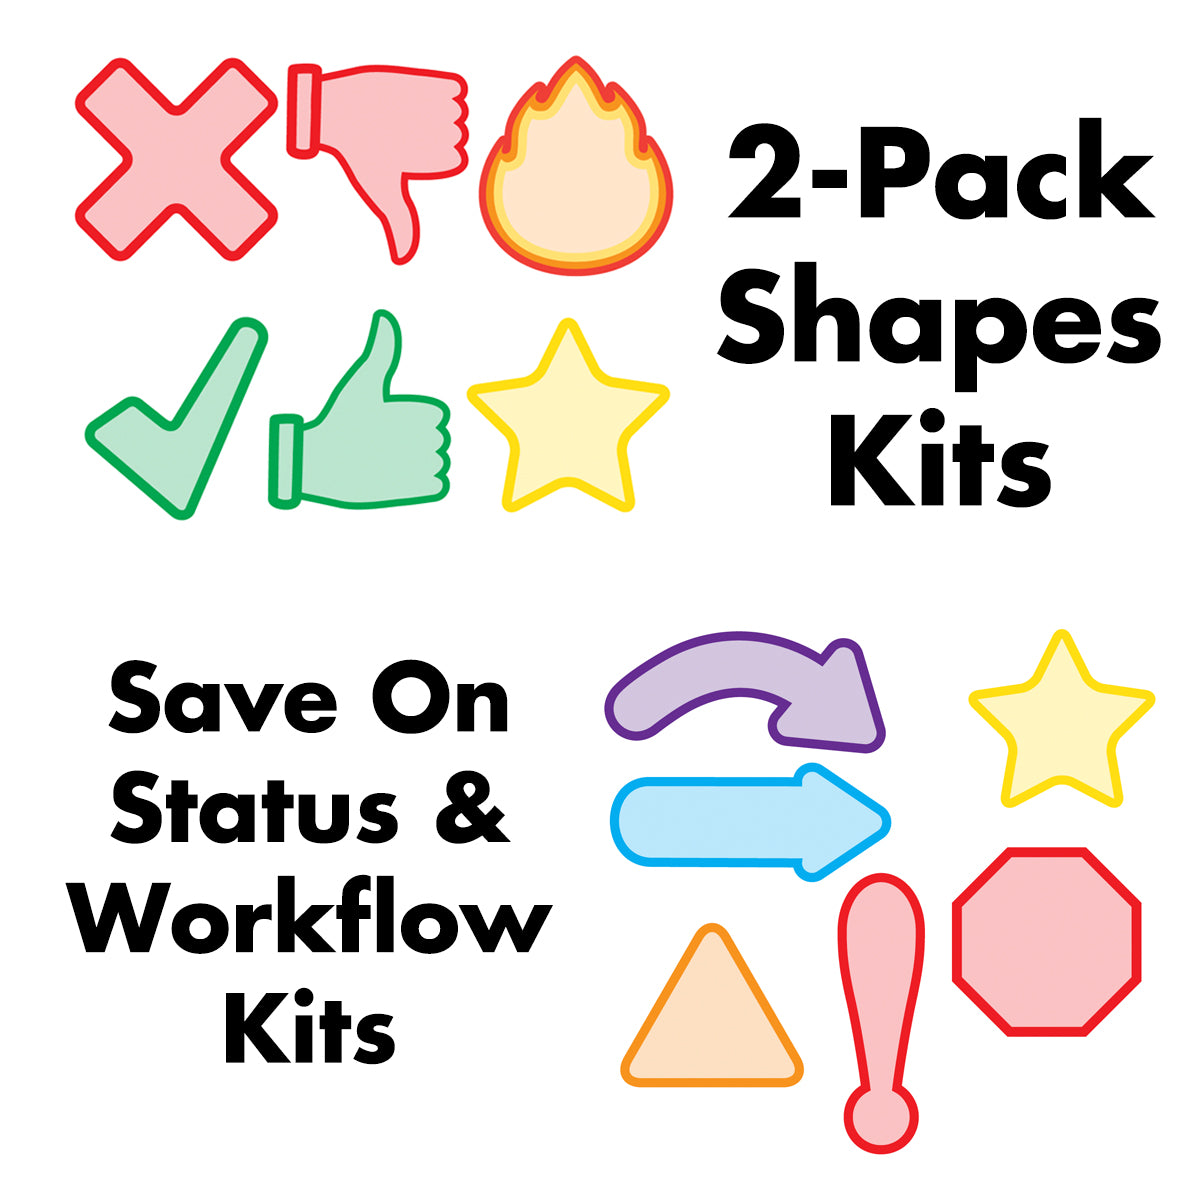 2-Pack Shapes Kits